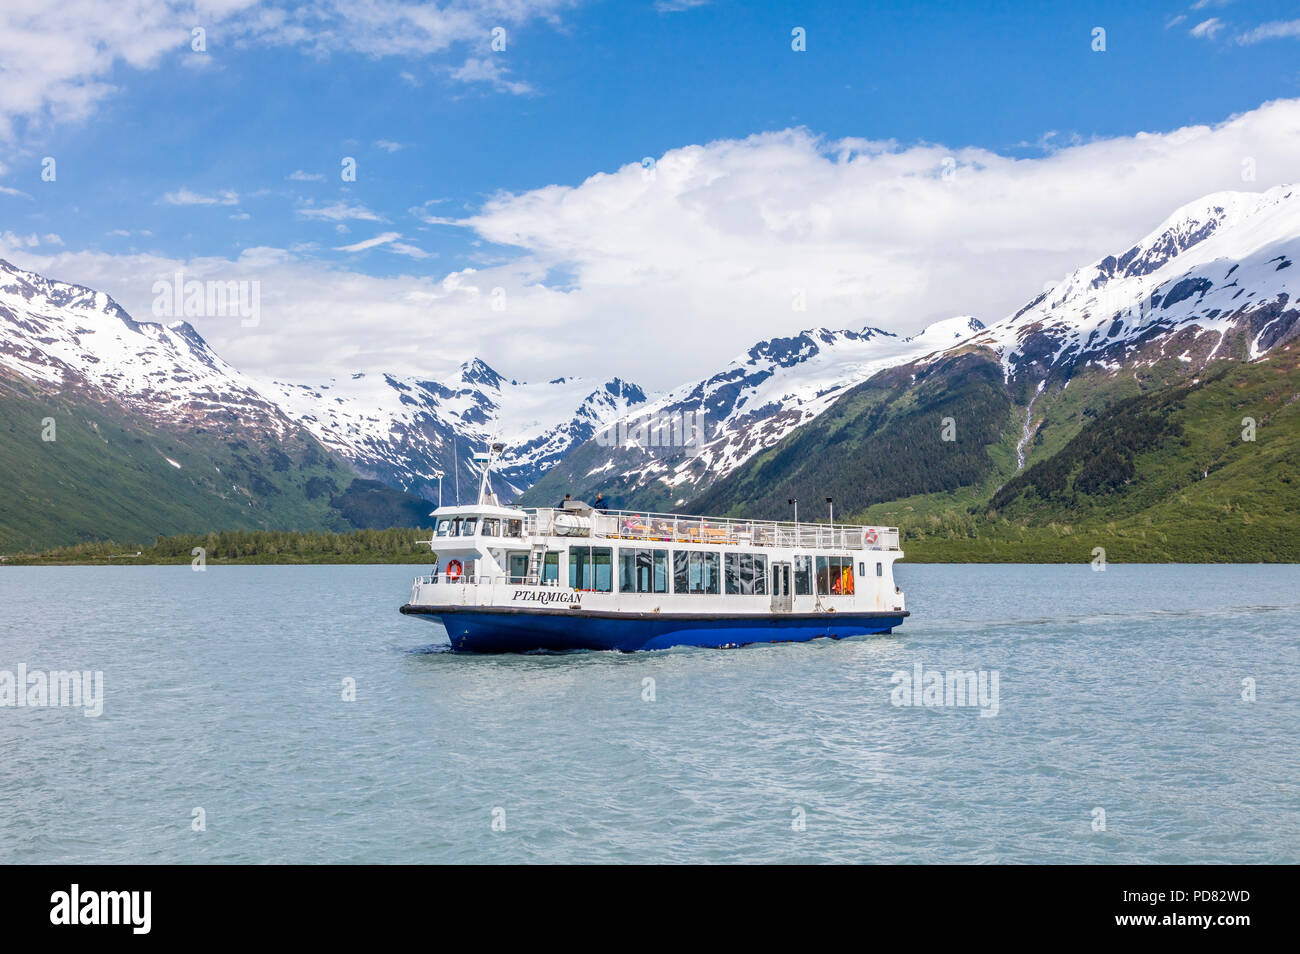 Glacier tour boat mv Ptarmigan on Portage Lake which  is a glacial lake in the Chugach National Forest on the Kenai Peninsula of Alaska - Stock Image